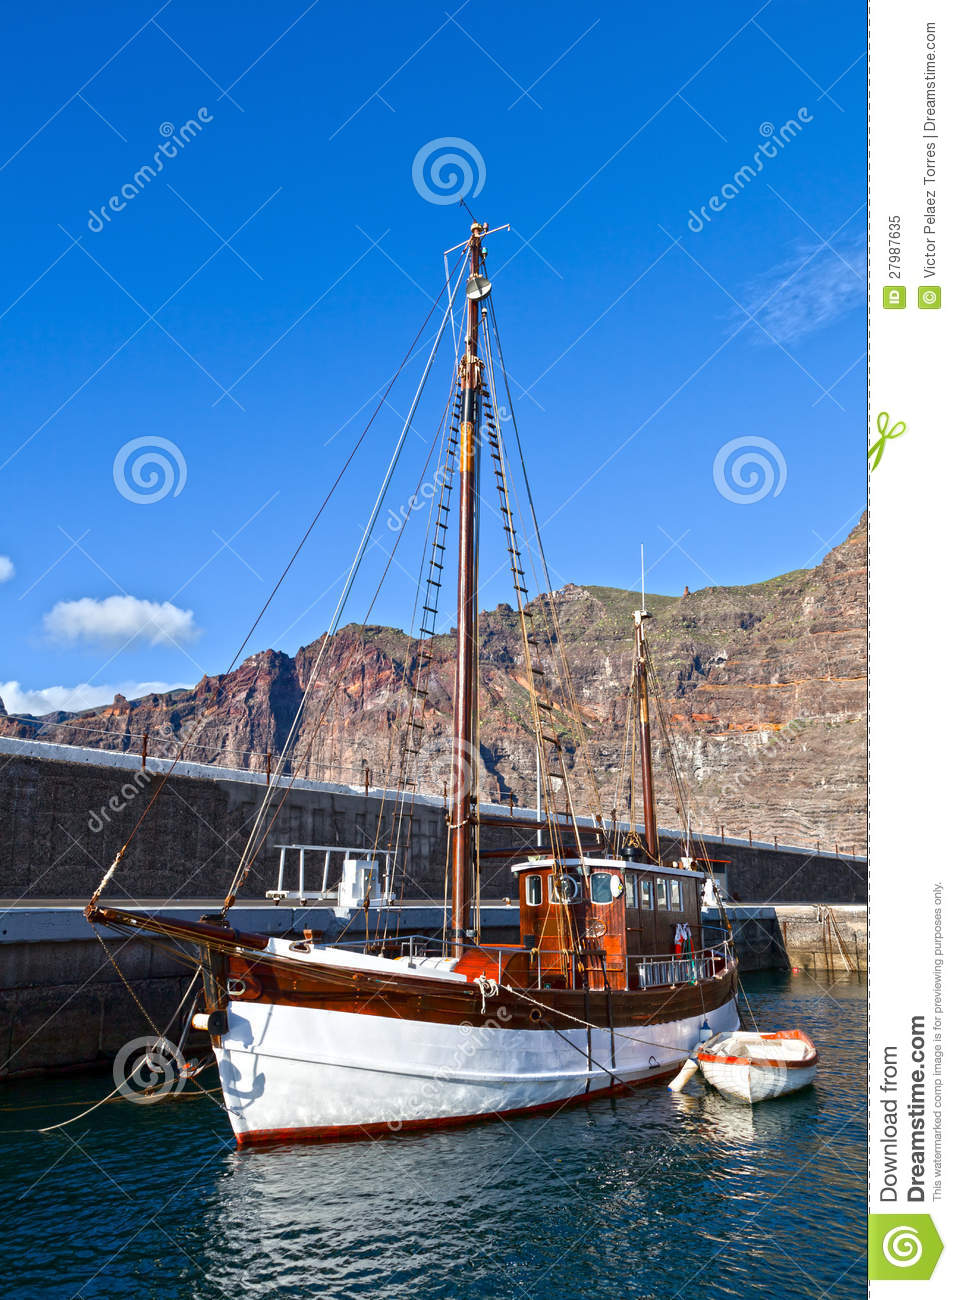 Old Wooden Sailboat In Puerto De Santiago Royalty Free Stock Photo ...